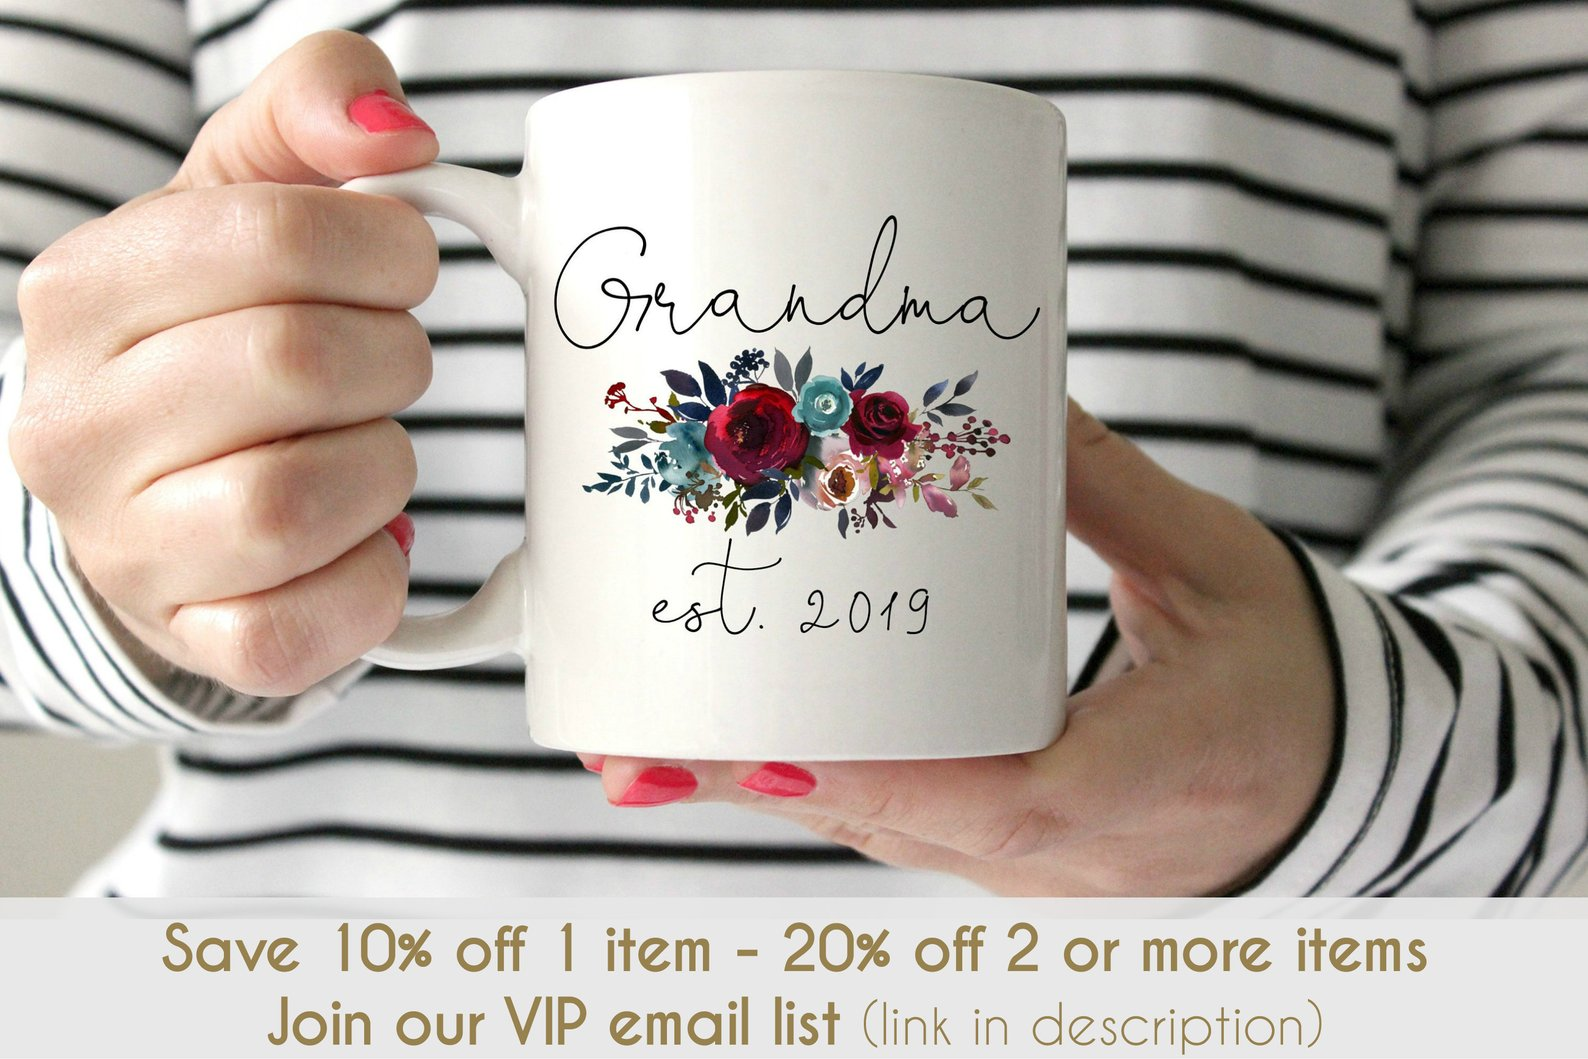 Coffee mug reading: Grandma, est 2019 with pretty flowers